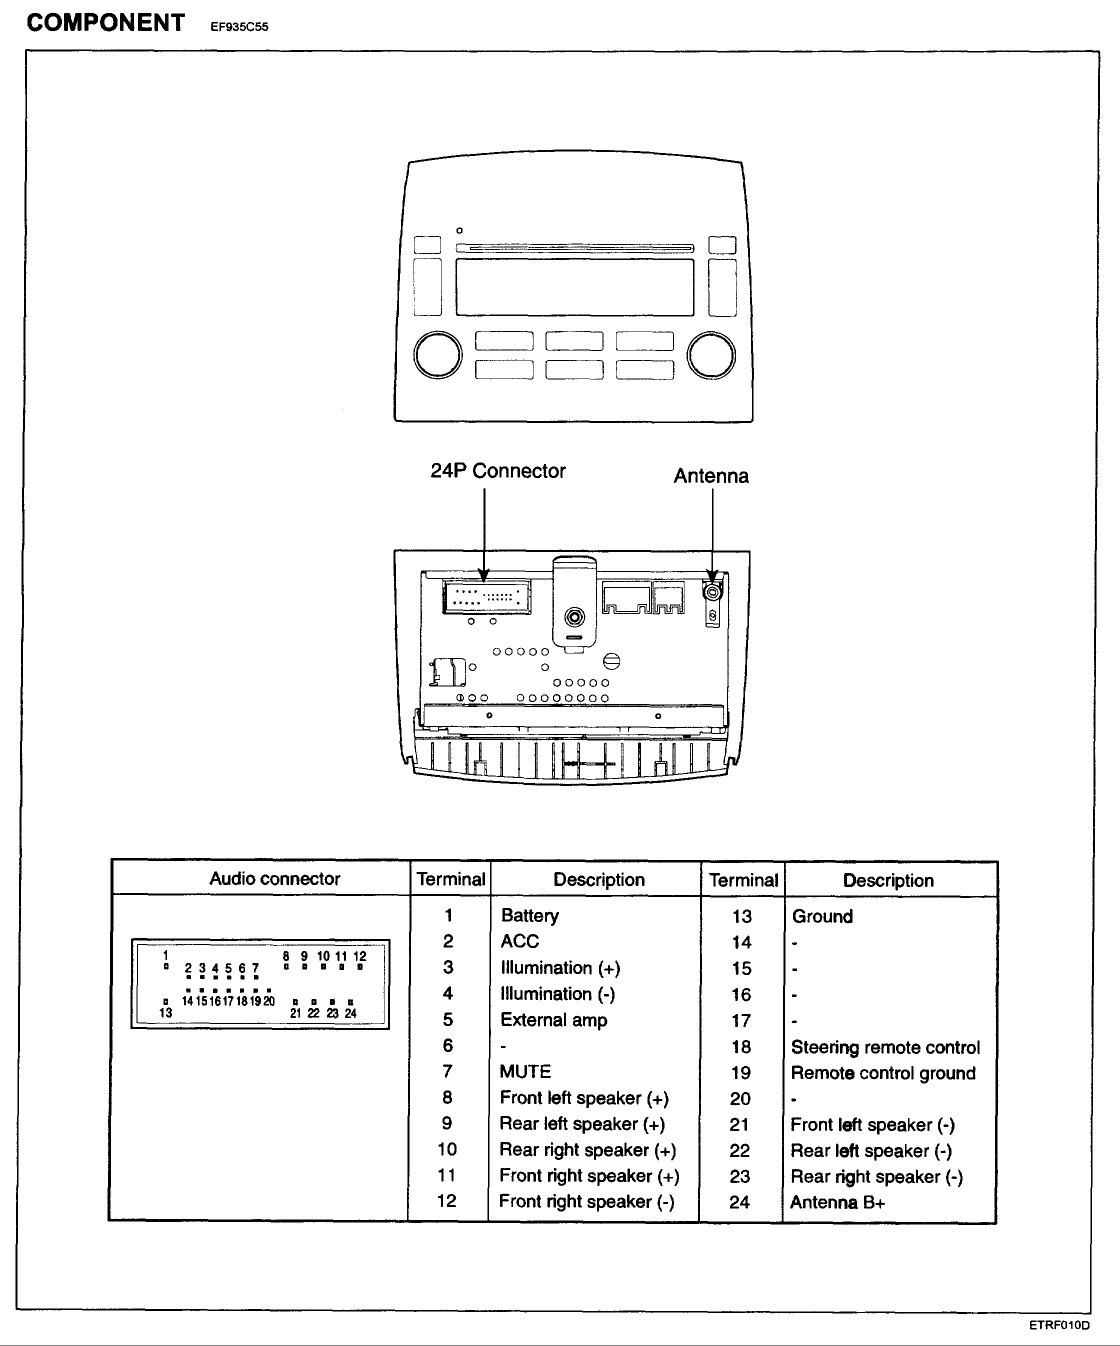 hight resolution of hyundai xg350 radio wiring diagram wiring diagram centre 2004 hyundai xg350 wiring diagram hyundai radio wiring